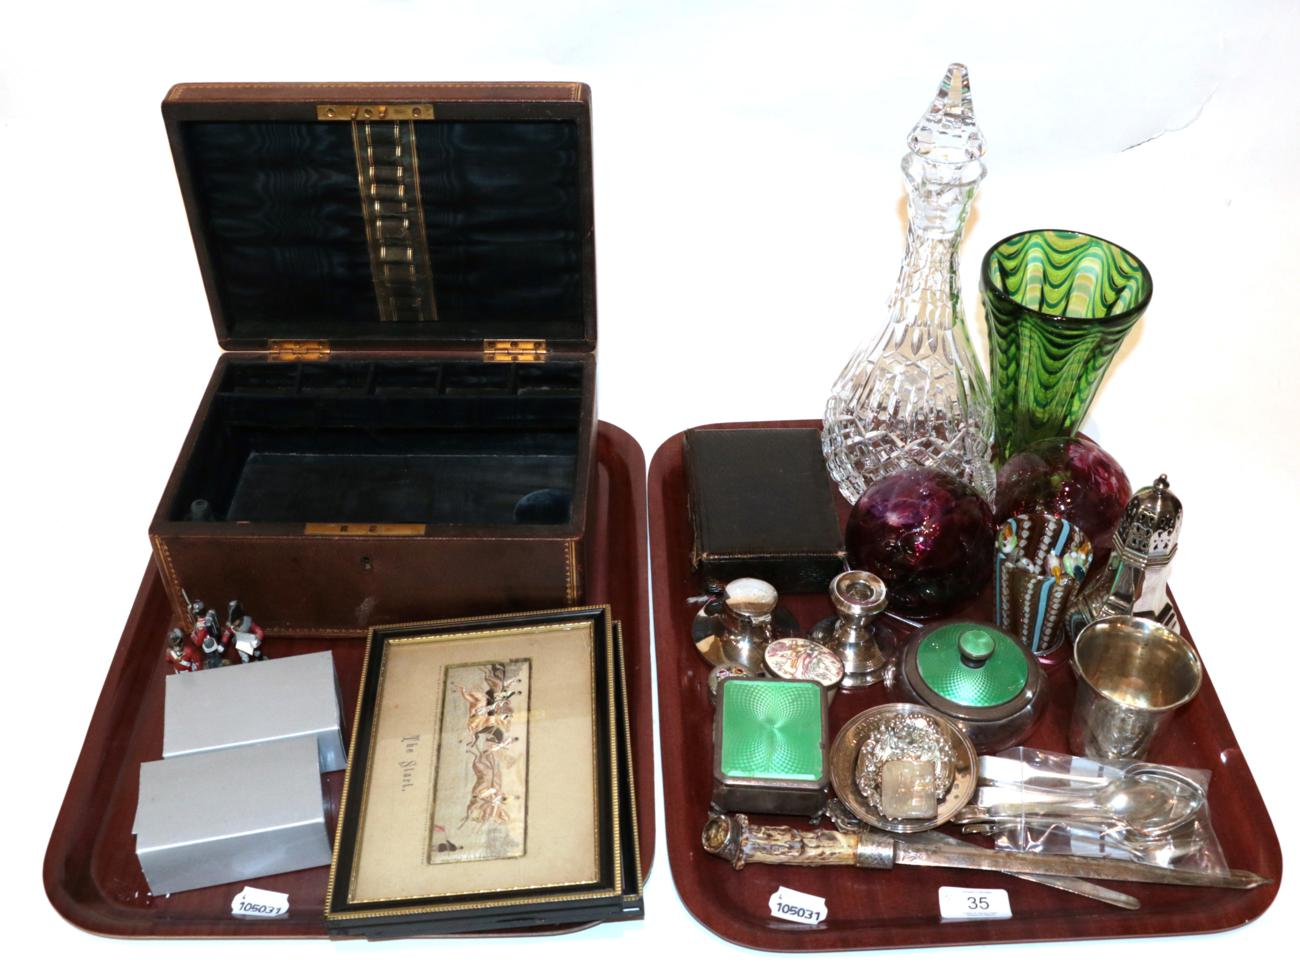 Lot 35 - A group lot of silver, silver plate and other items including: a group of spoons; silver and